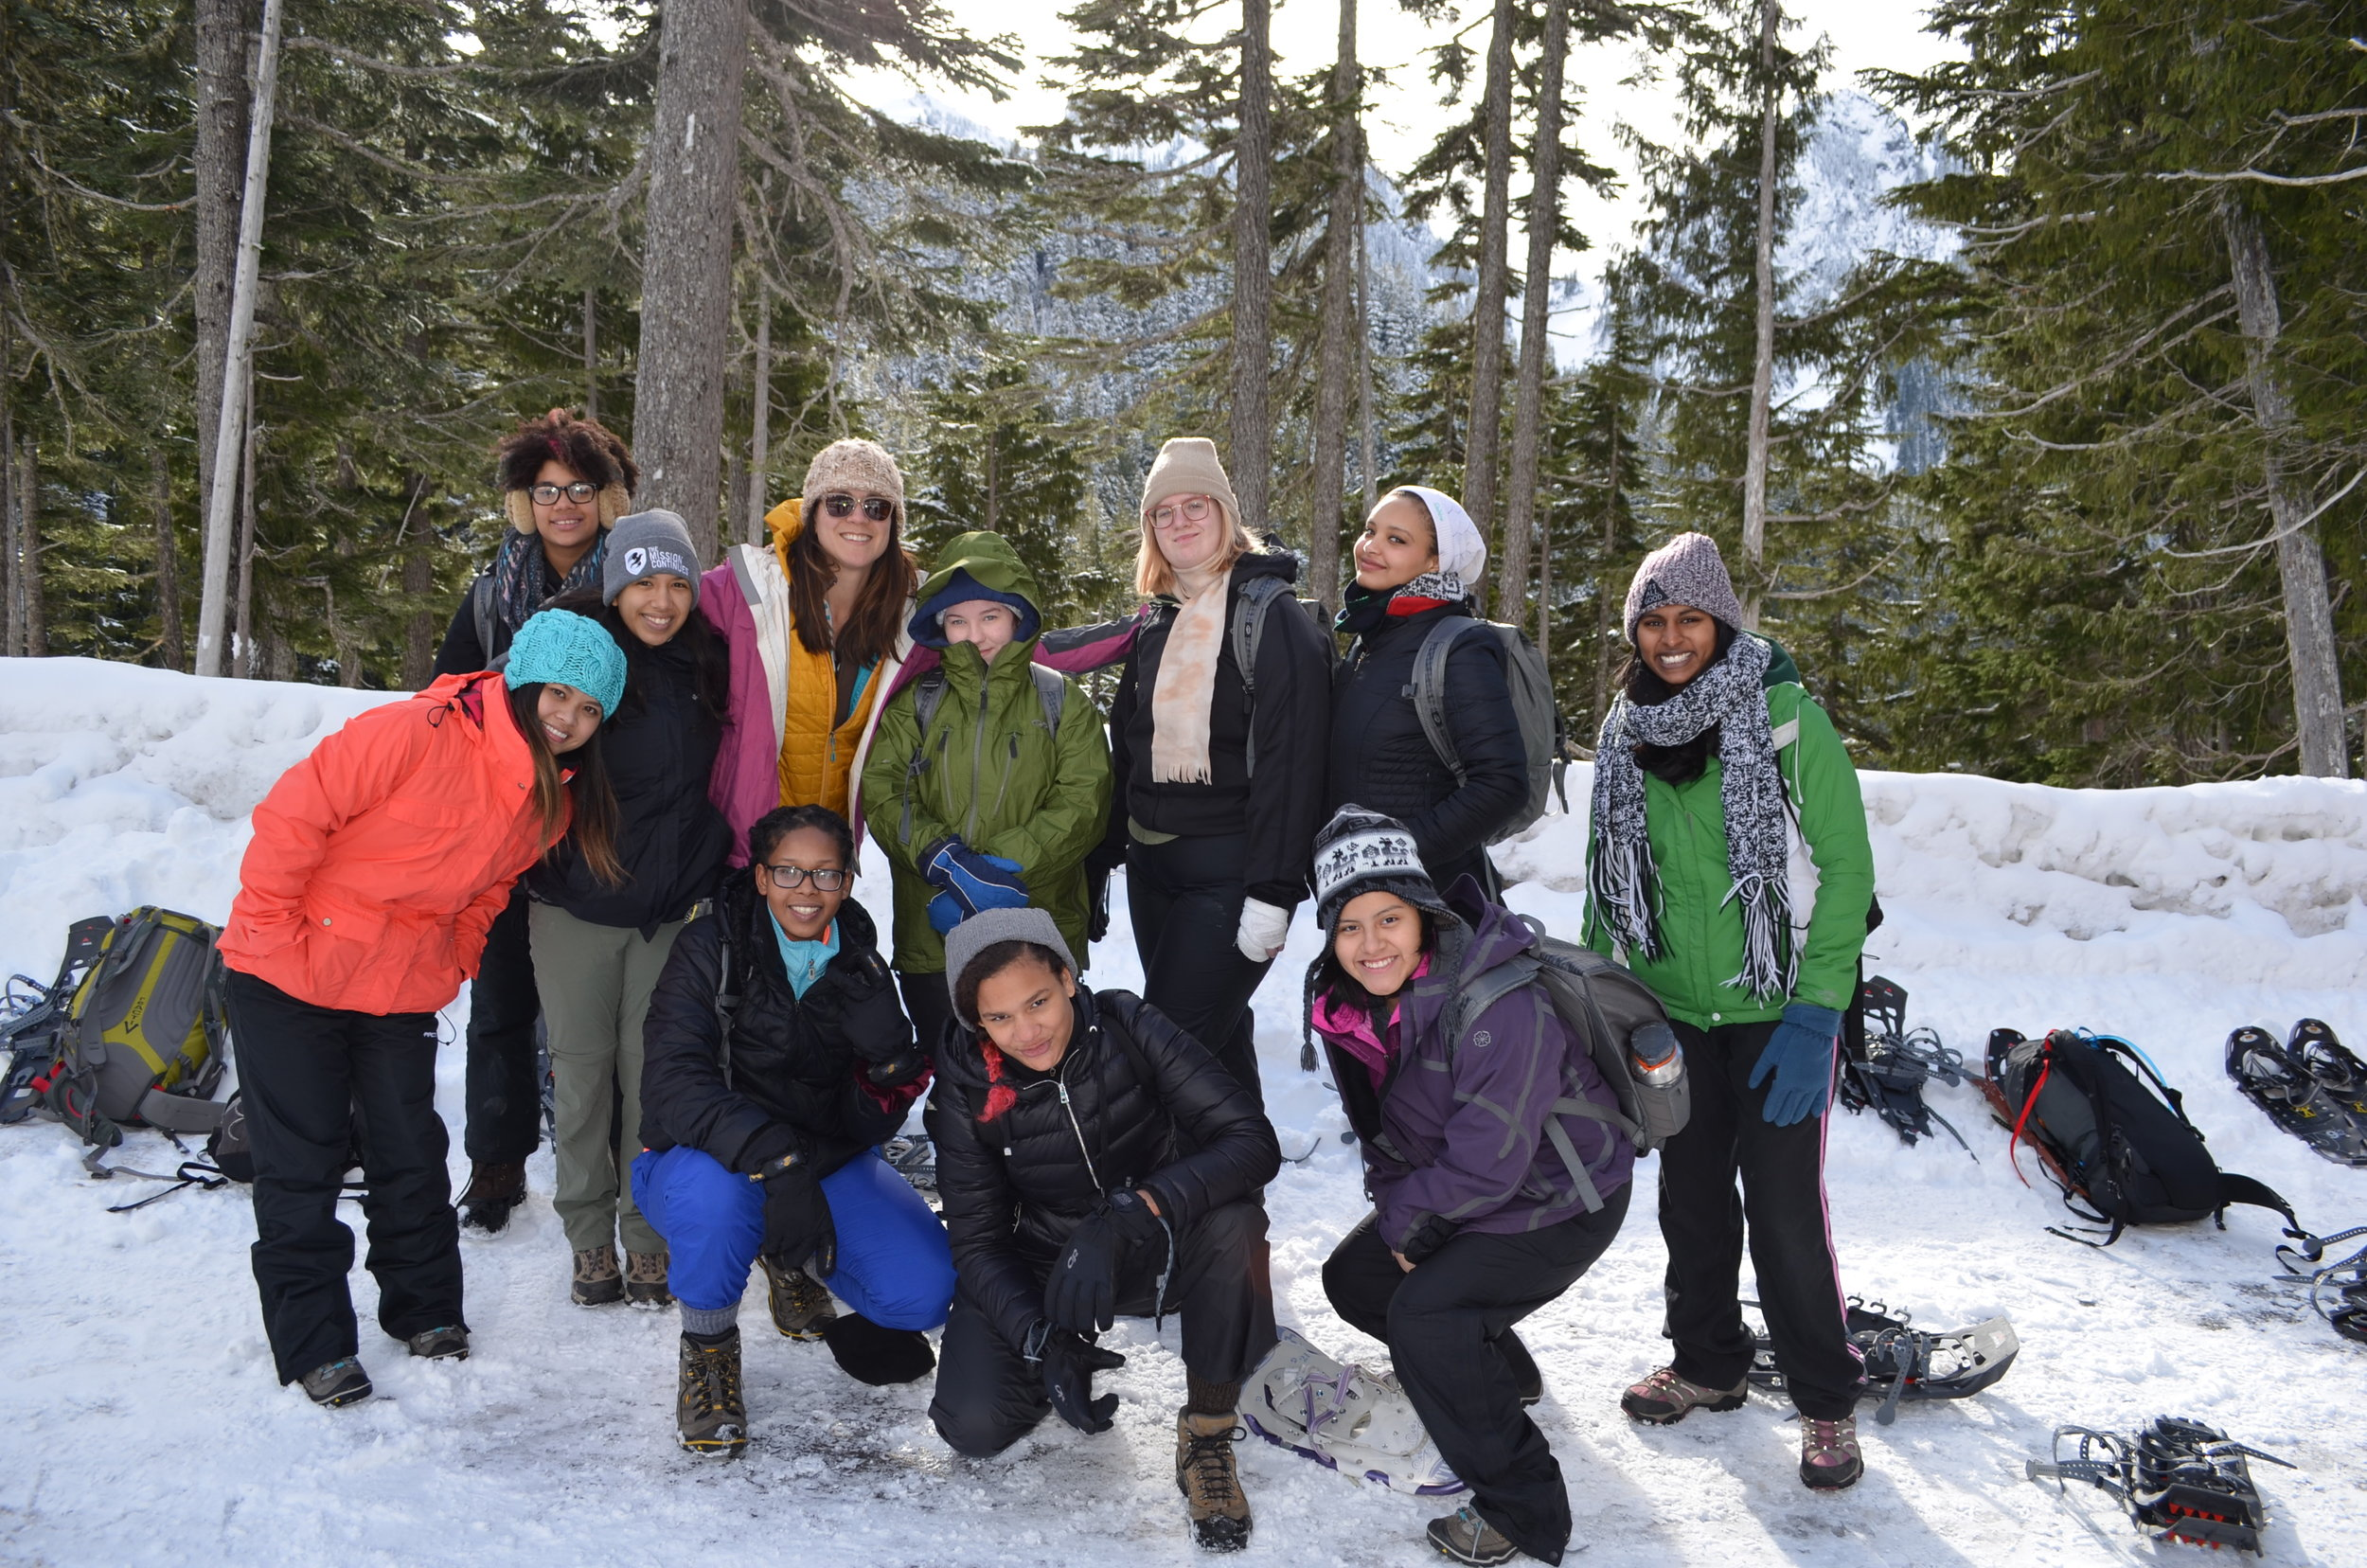 The Mountaineers and Young Women Empowered enjoy a snowshoe trip at Mount Rainier. Young Women Empowered is one of many local youth-serving agencies we partner with through our Mountain Workshops, a program committed to sharing the outdoors with young people. Photo credit: Margaux Gottlieb